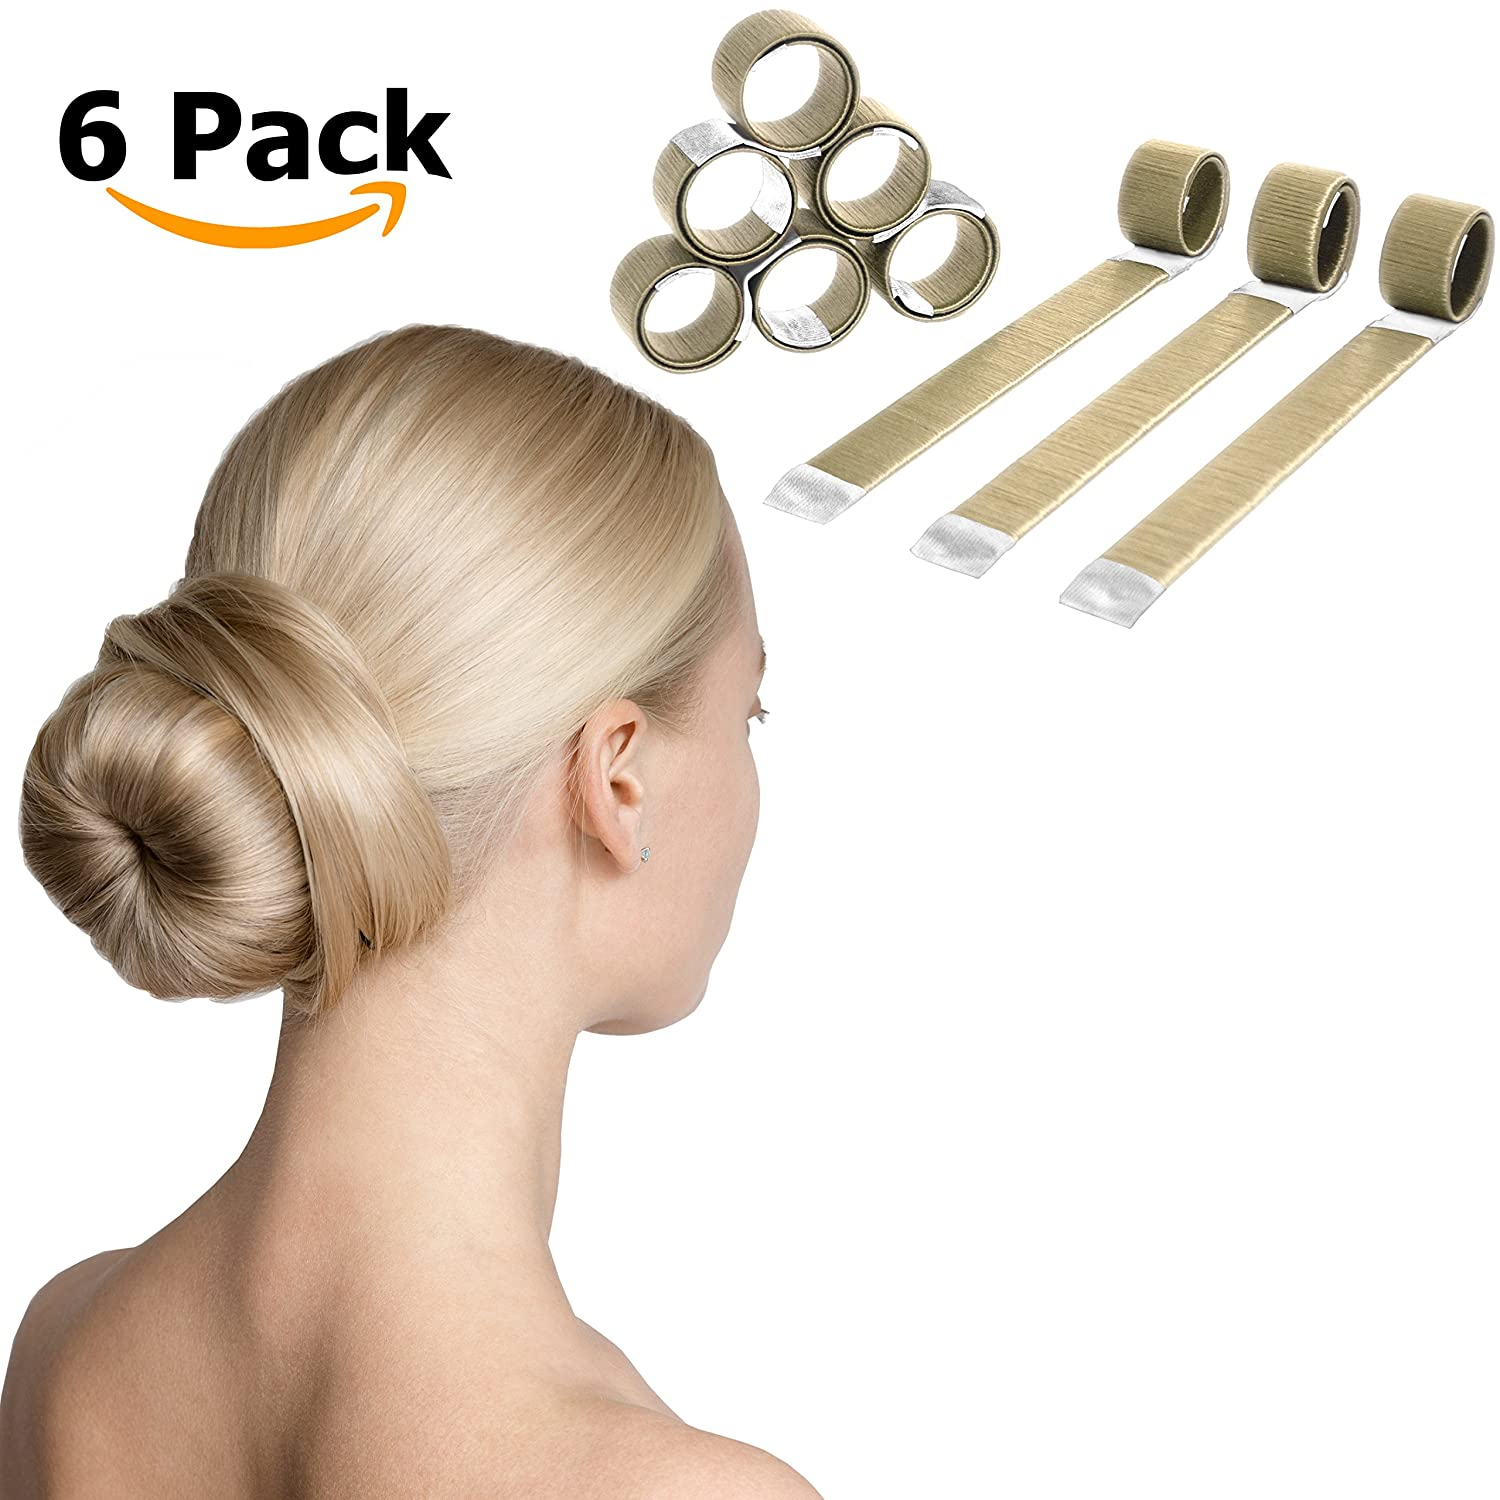 Magic Hair Bun Maker - 6 Pack - The Extra Strength Donut Crown Shaper (Blonde) The Canadian Economists 0322001A